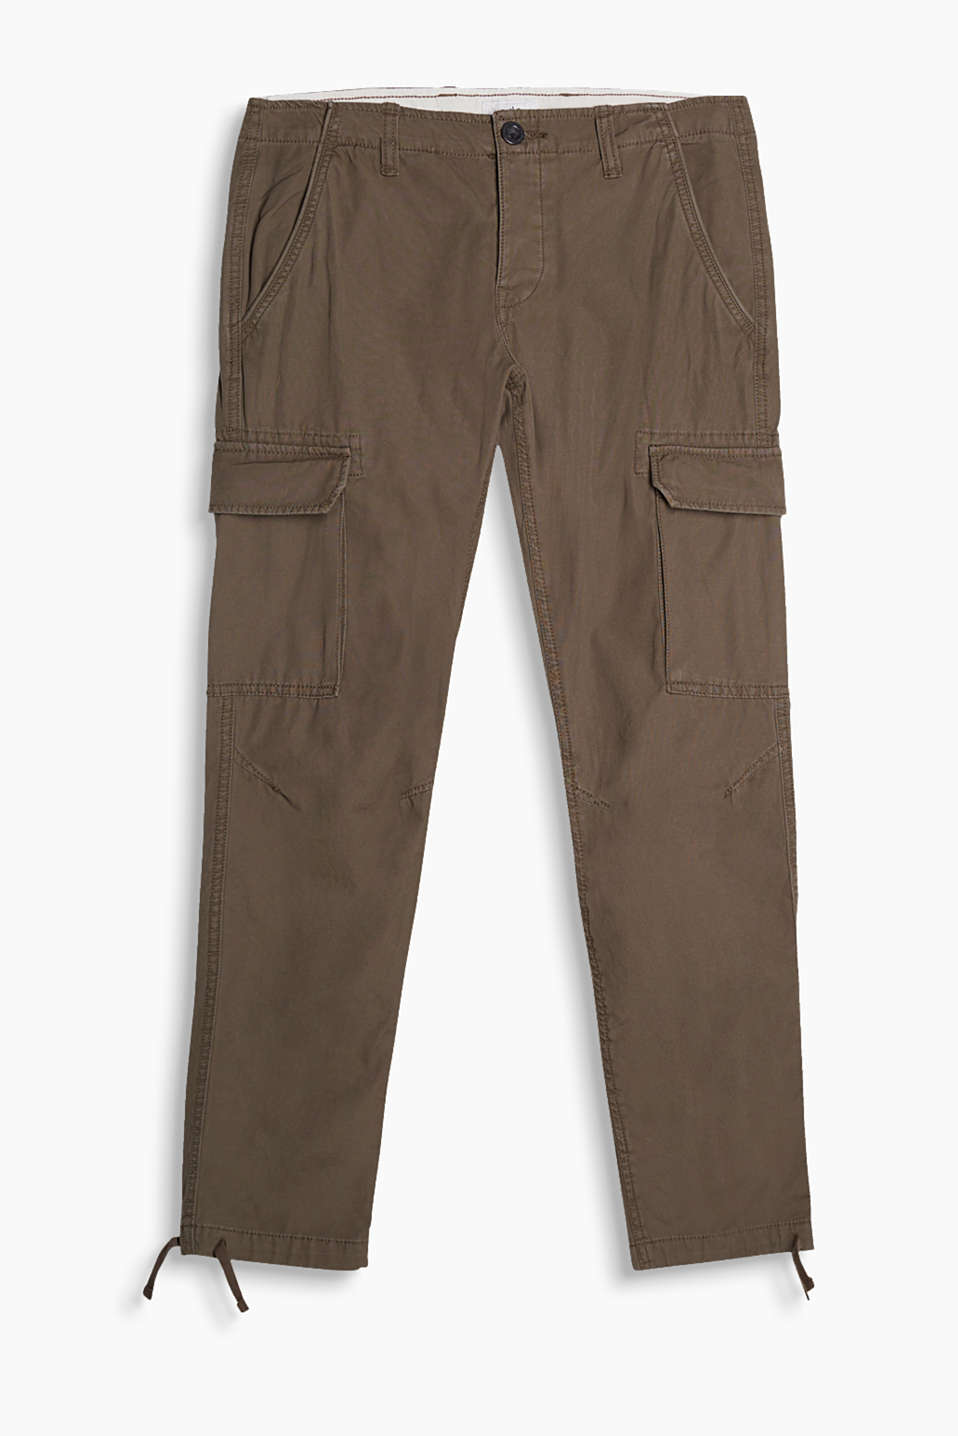 Casual cargo trousers with bellows pockets and a garment-washed finish